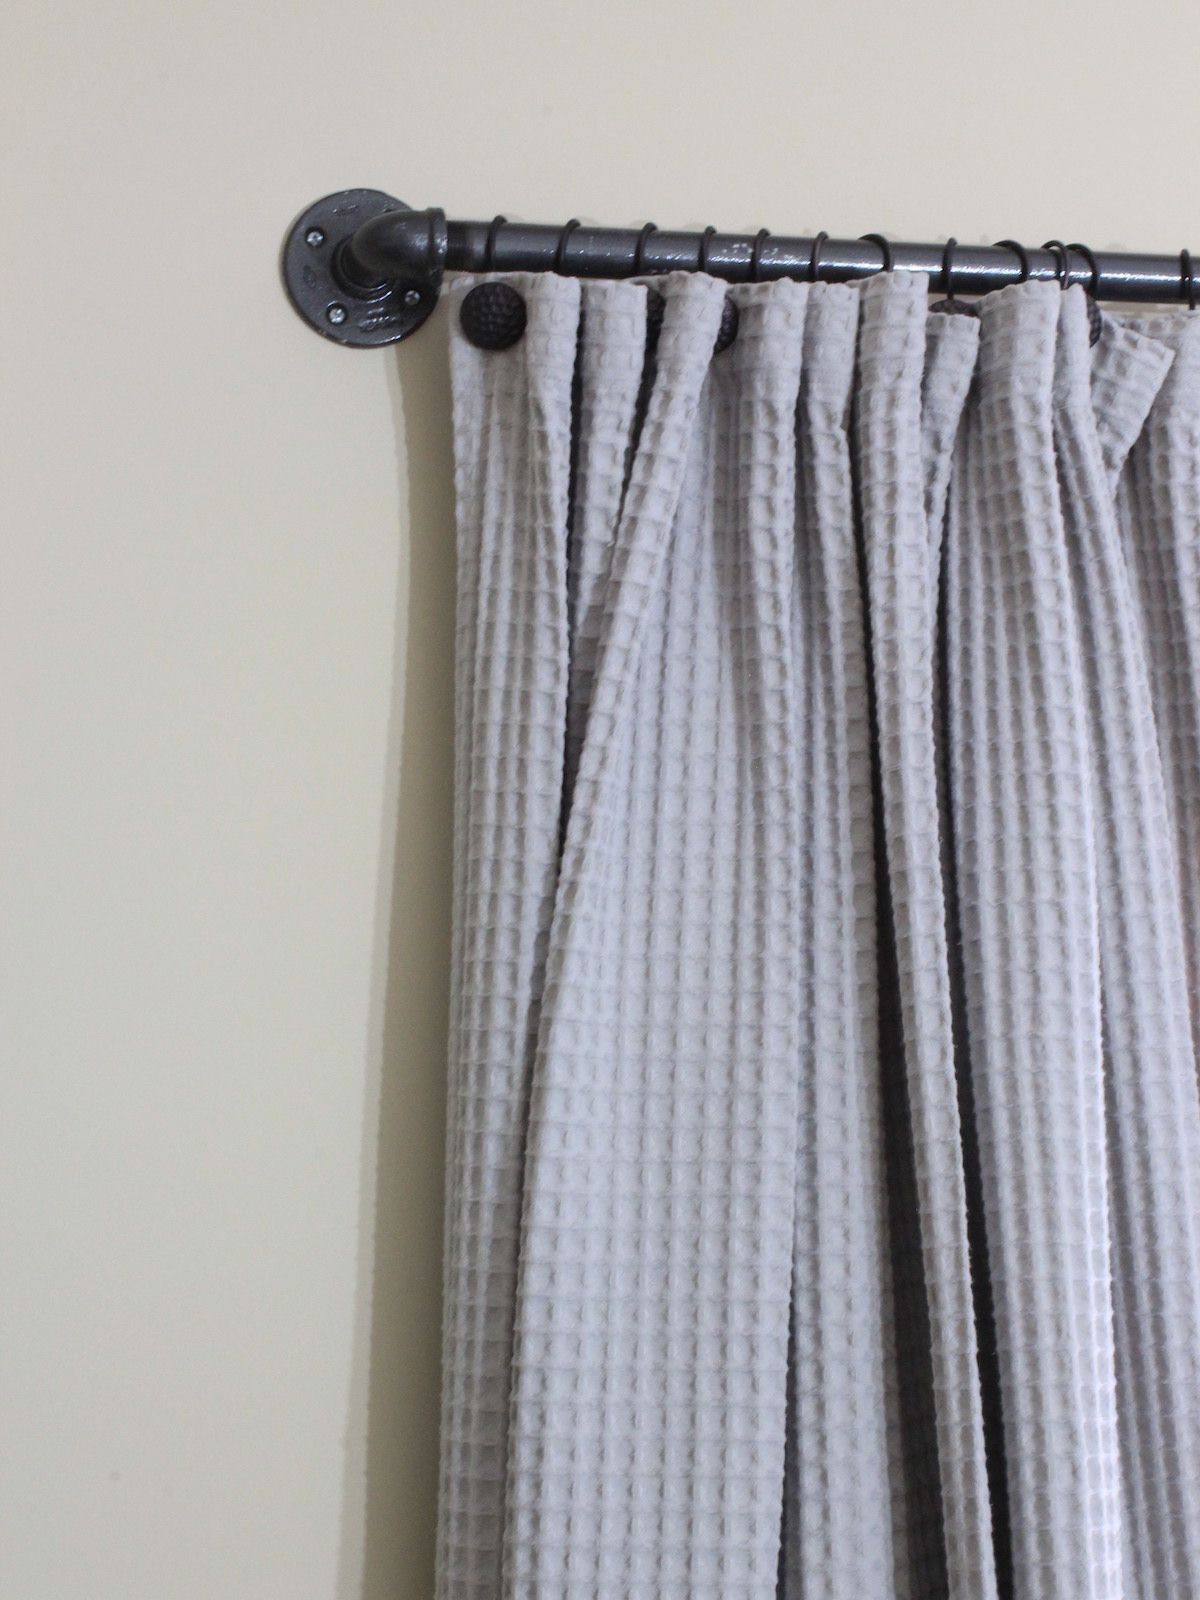 6 Ways To Make Your Own Curtain Rods